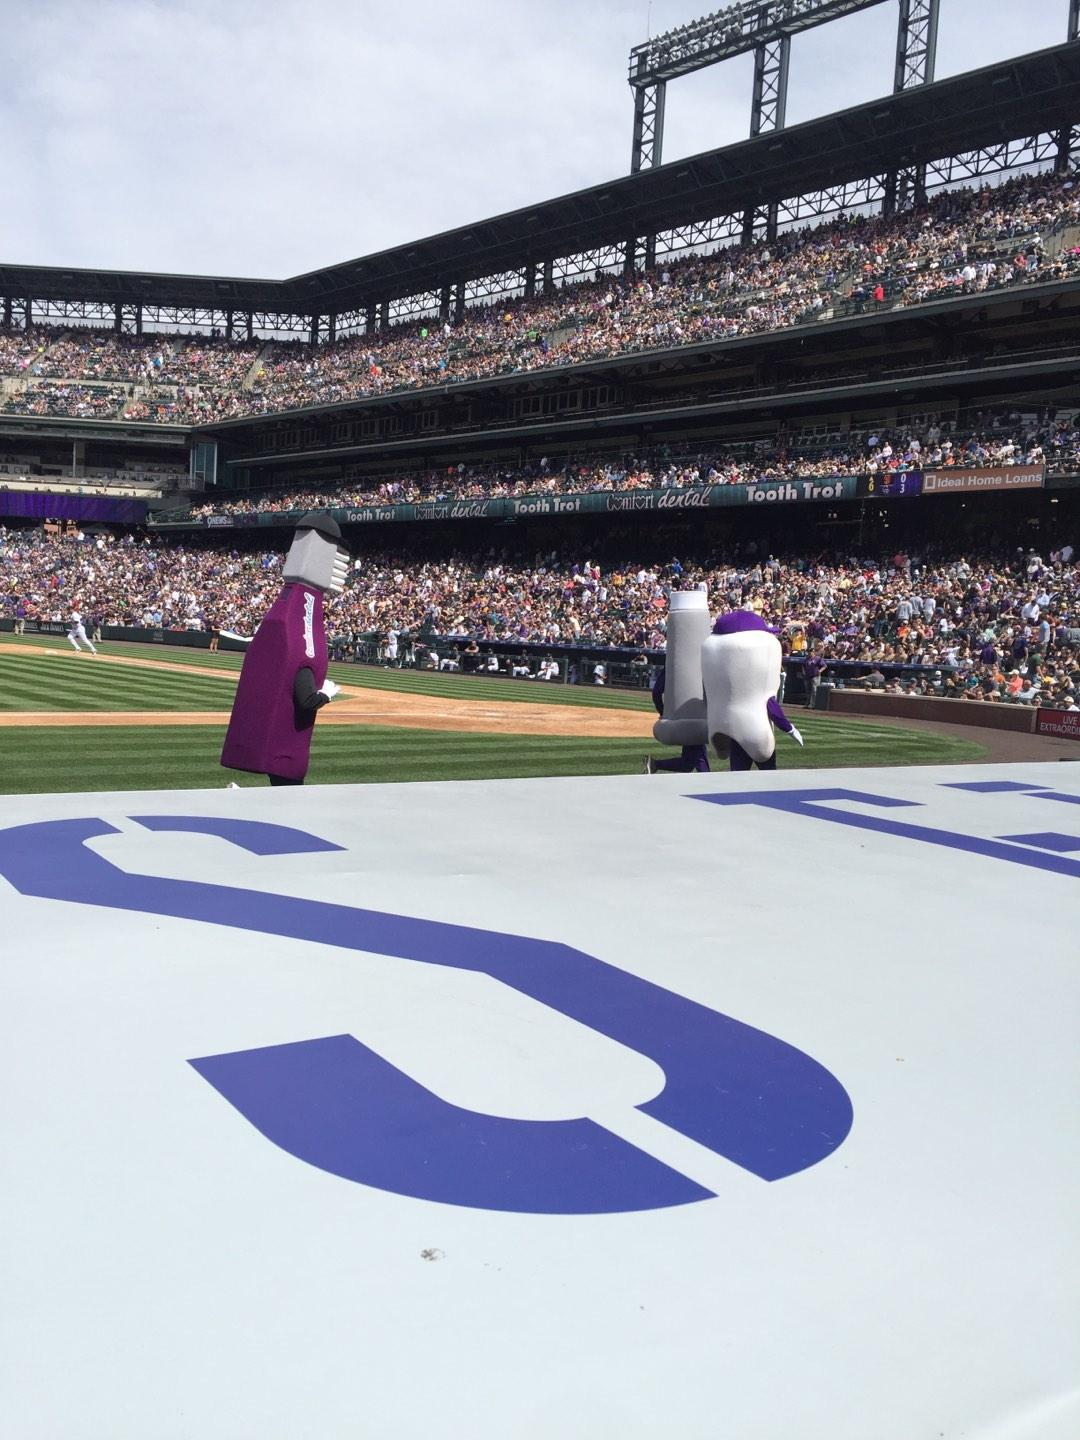 Coors Field Section 137 Row 5 Seat 12